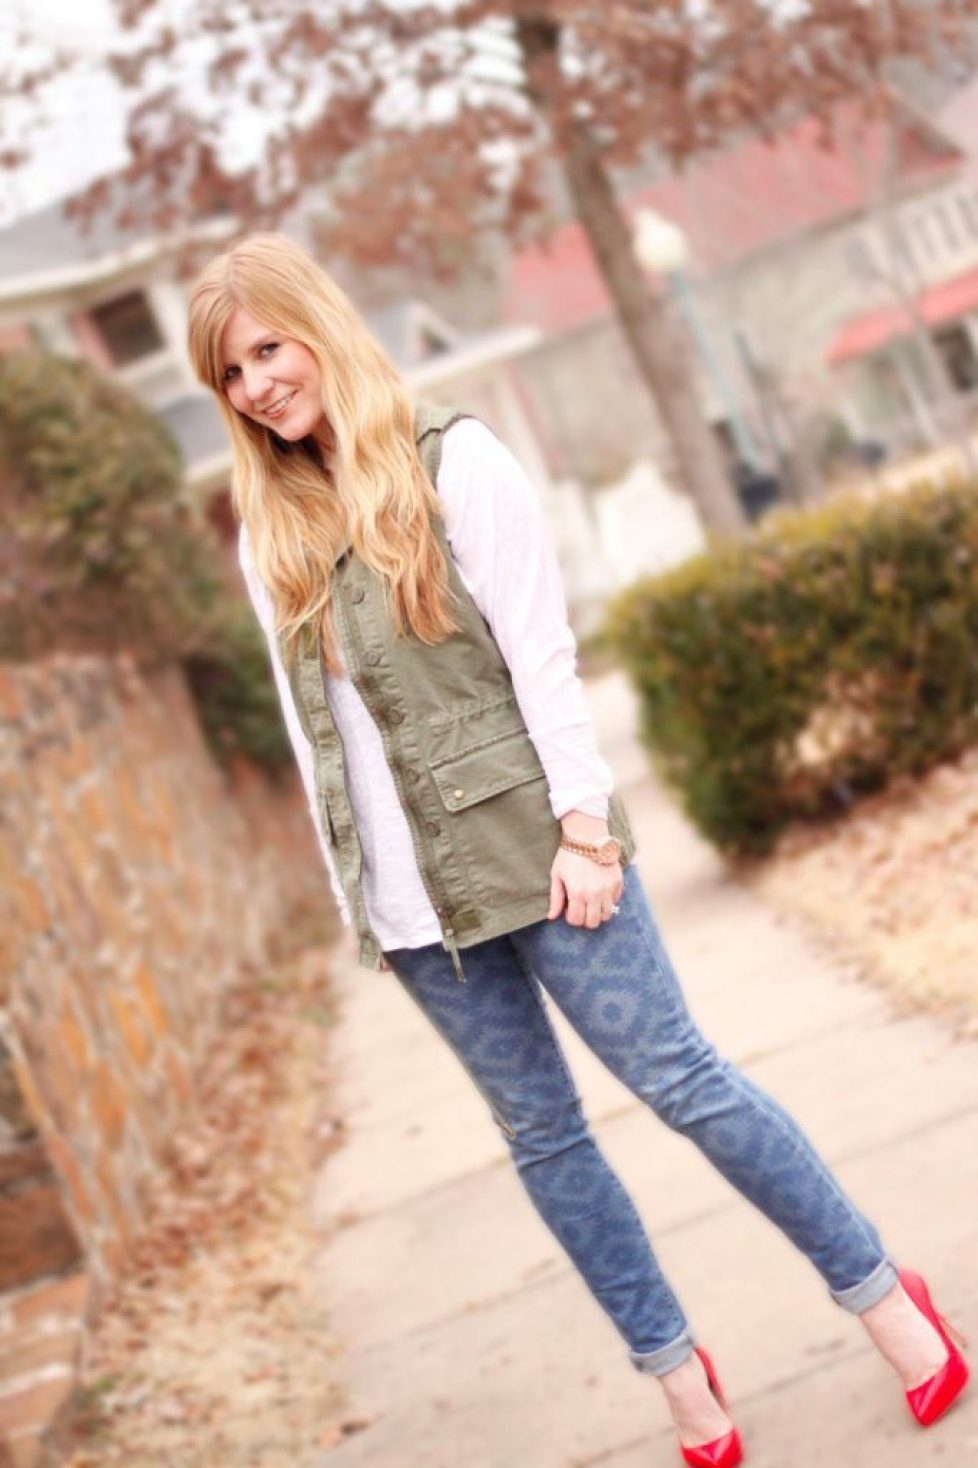 Wearing my favorite Willow & Clay military vest with red heels!